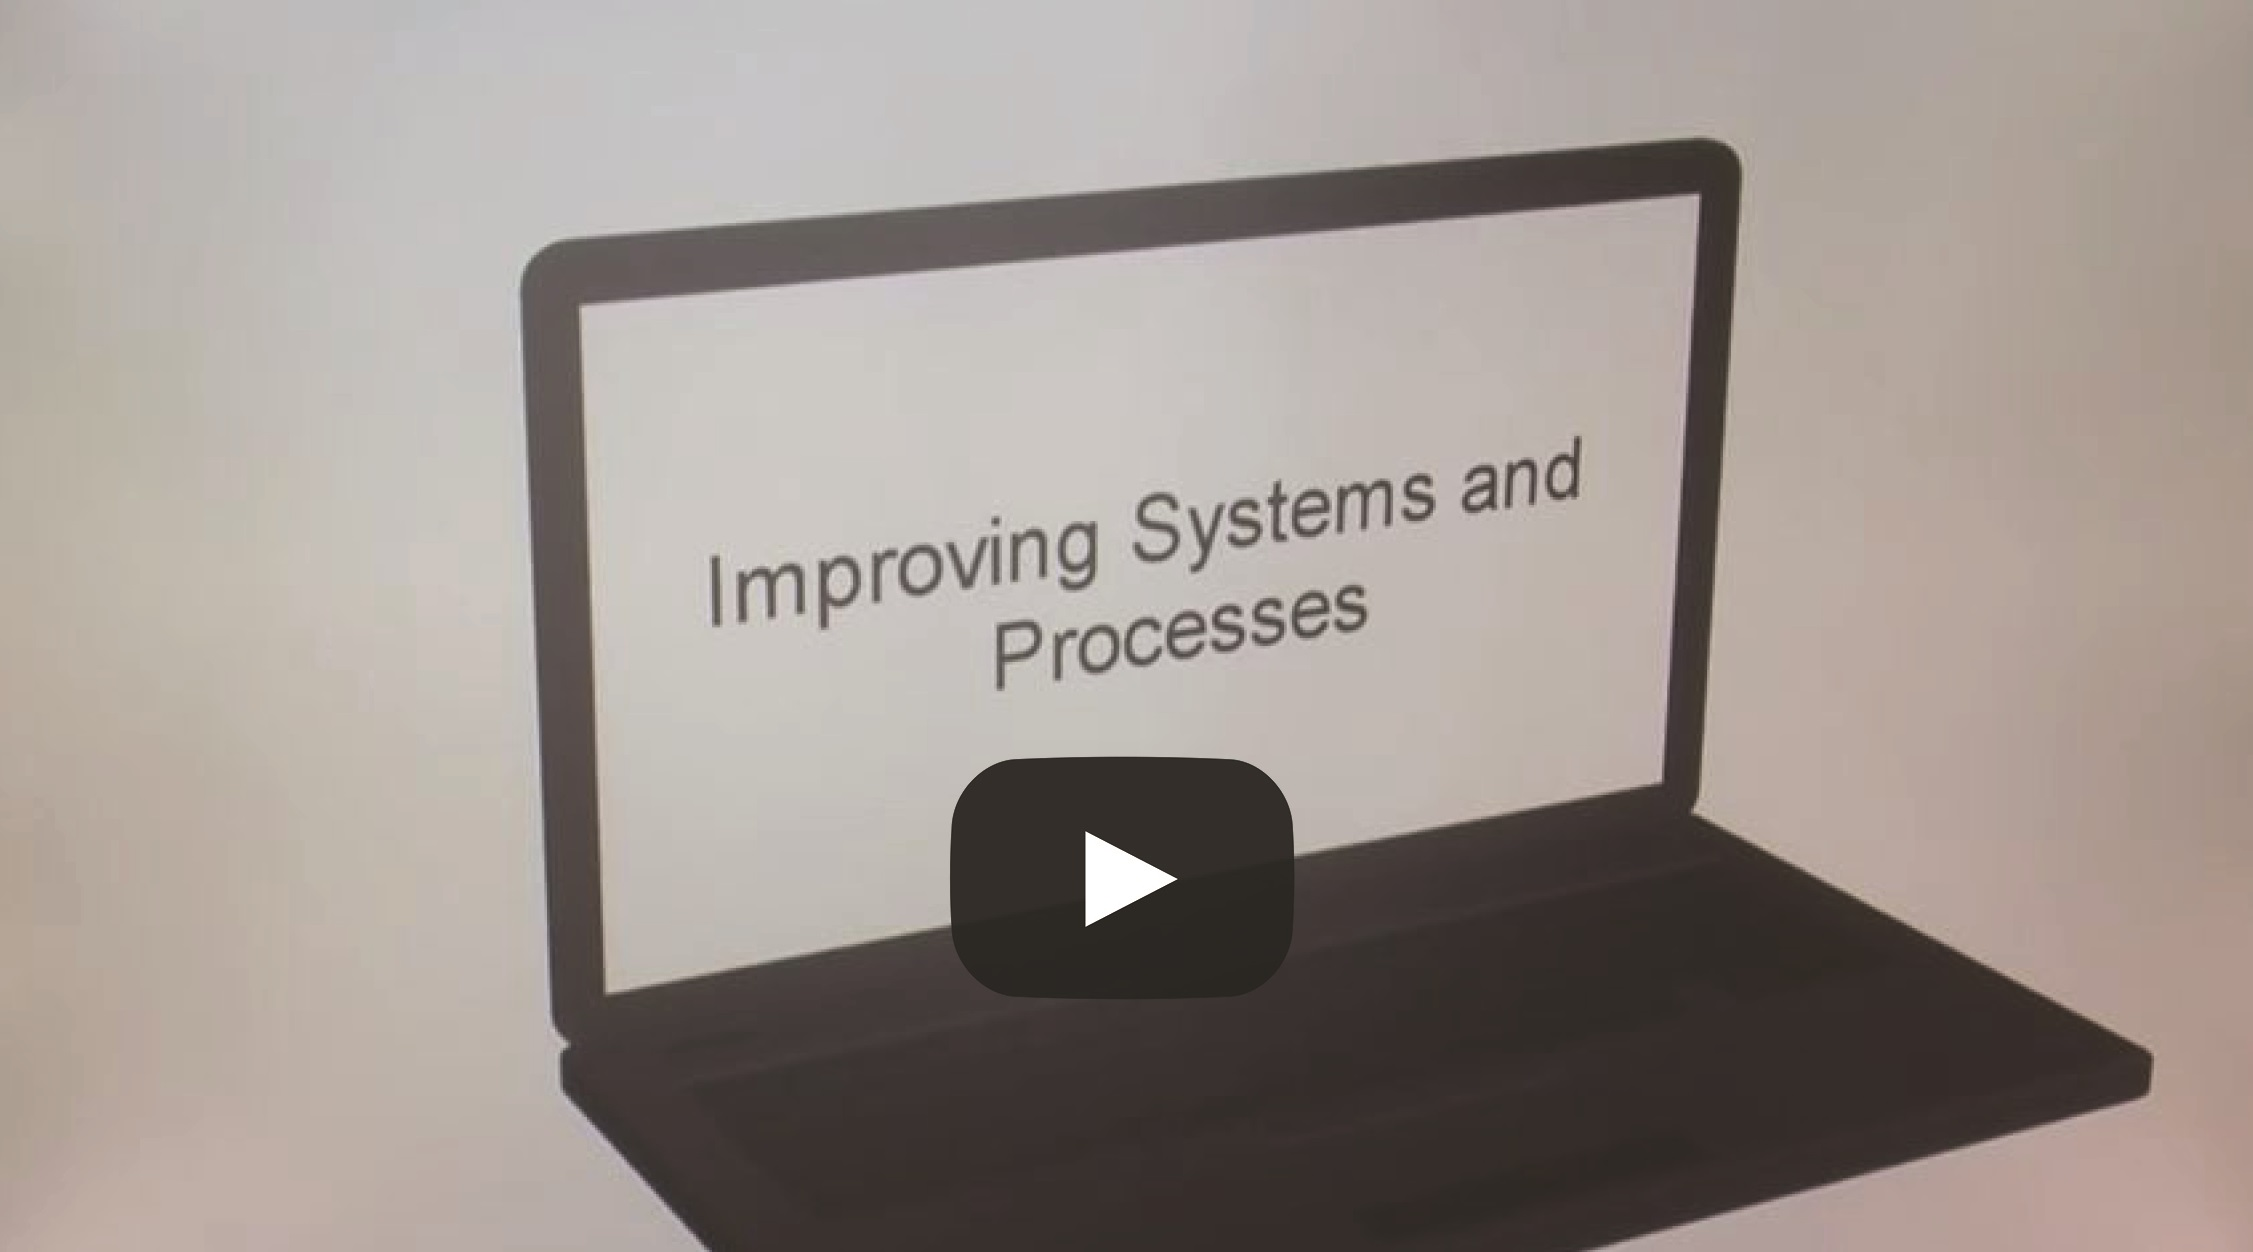 Improving Systems and Processes